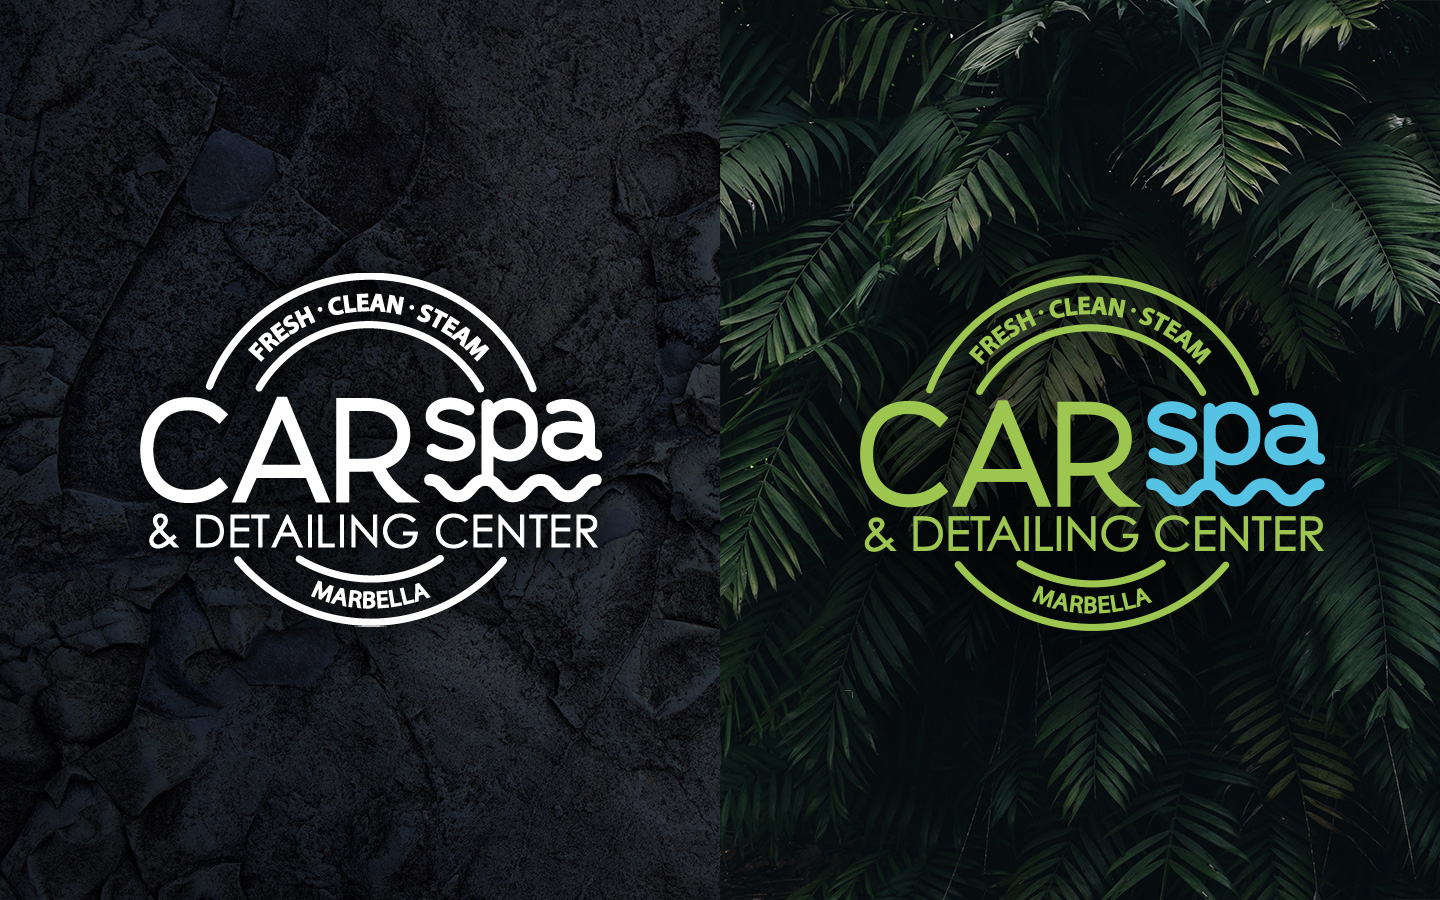 CAR Spa & Detailing Center - Branding by NARAN-HO Design Marbella